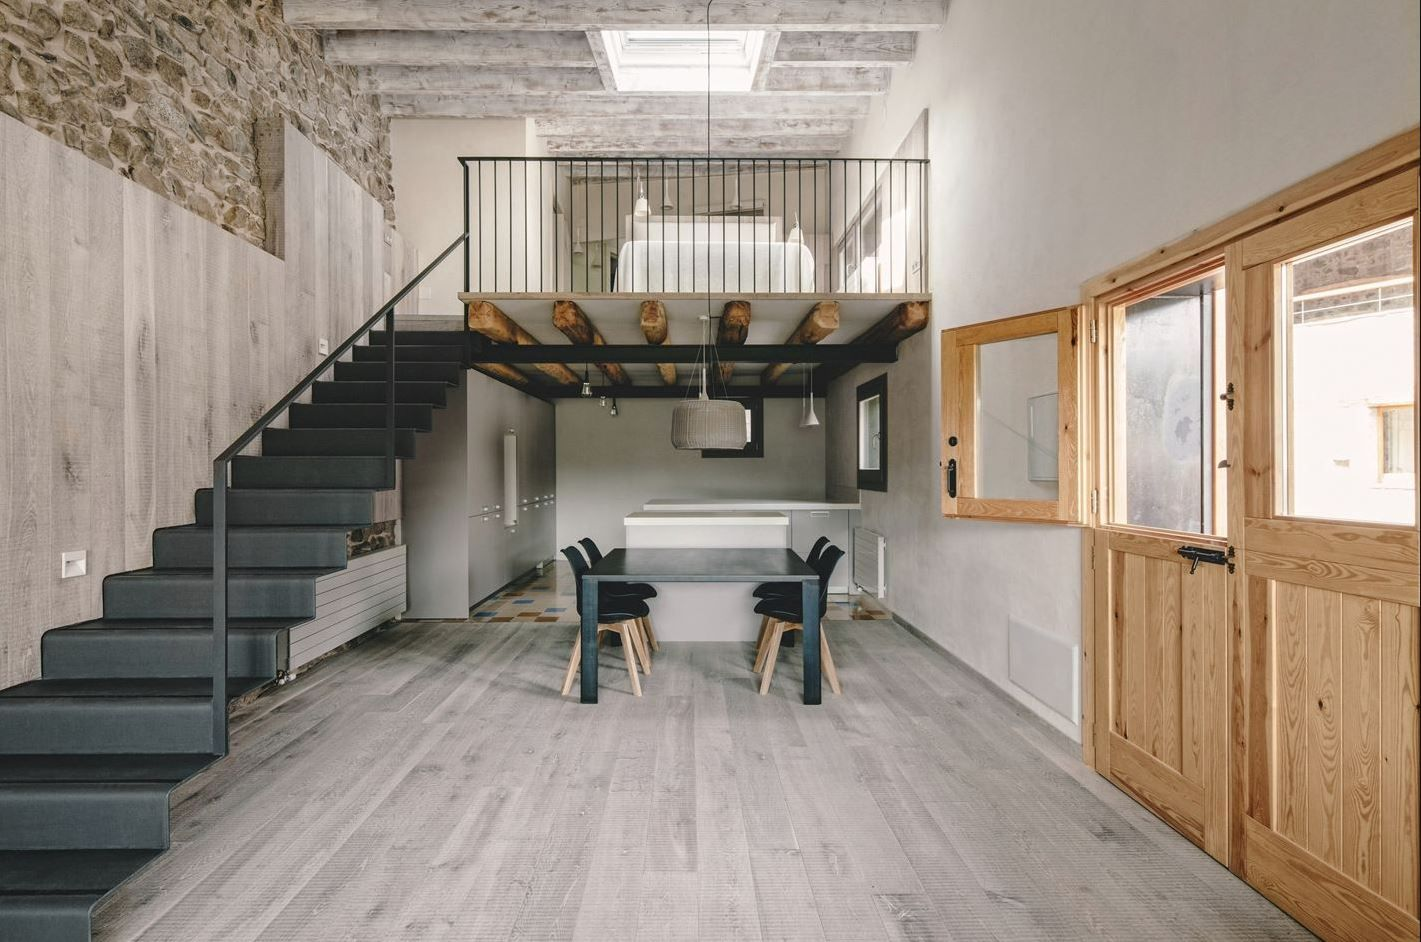 Mixing materials in a design is one of my favorite things to do! This fabulous space by Dom Arquitectura in Spain flawlessly mixing a variety of materials to create this amazing space! The natural feel of the wood and stone plays so elegantly with the iron staircase!